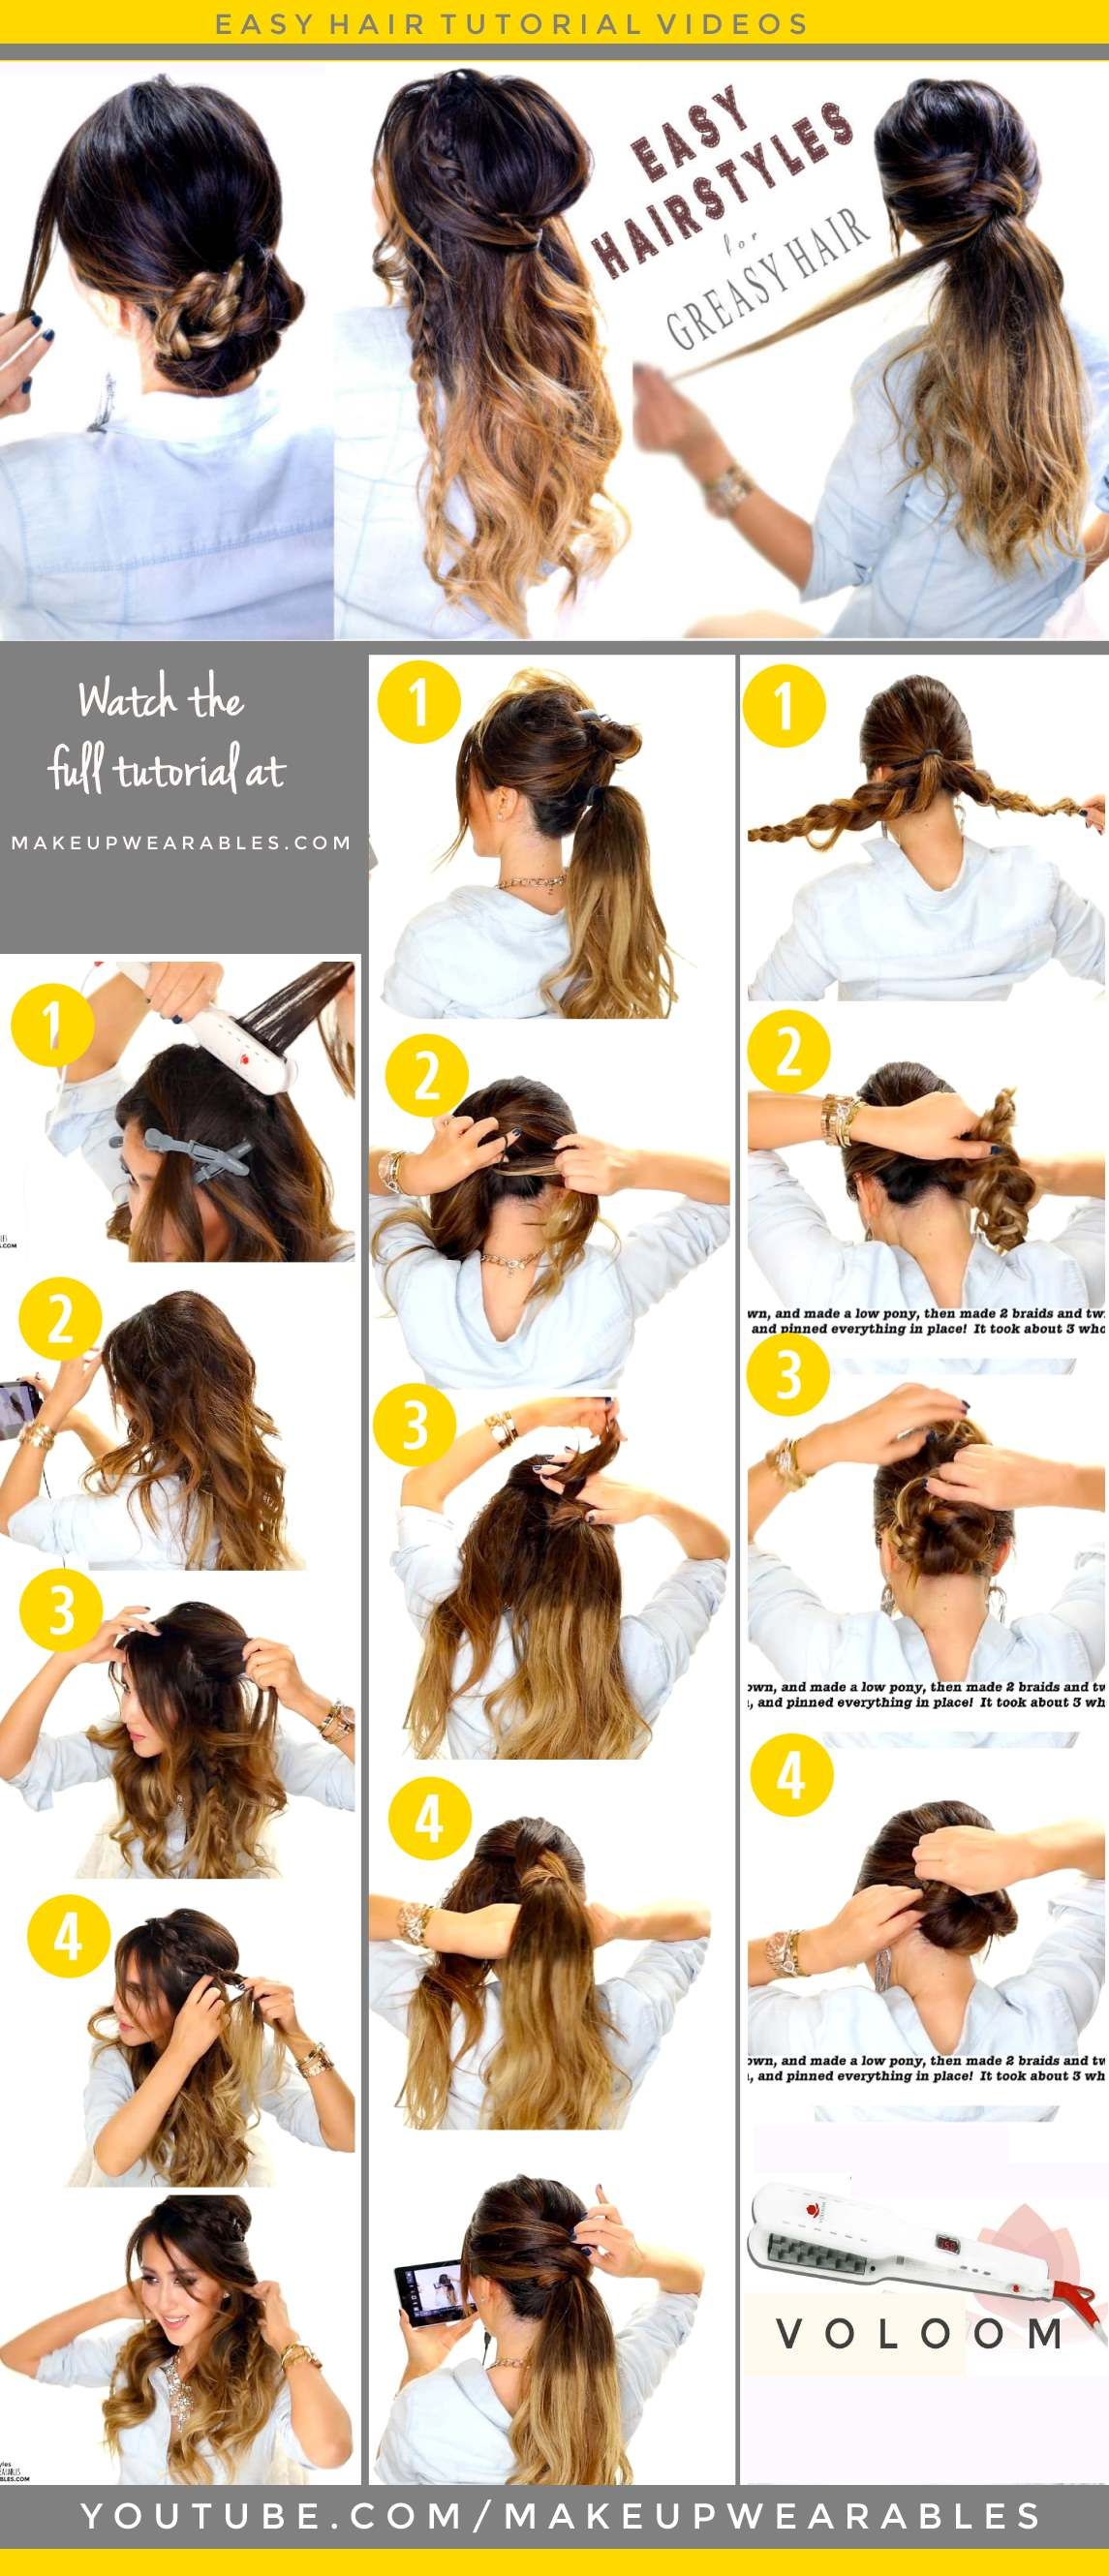 4 Easy Hairstyles For Greasy Hair Cute Everyday Styles Greasy Hair Hairstyles Hair Styles Long Hair Updo